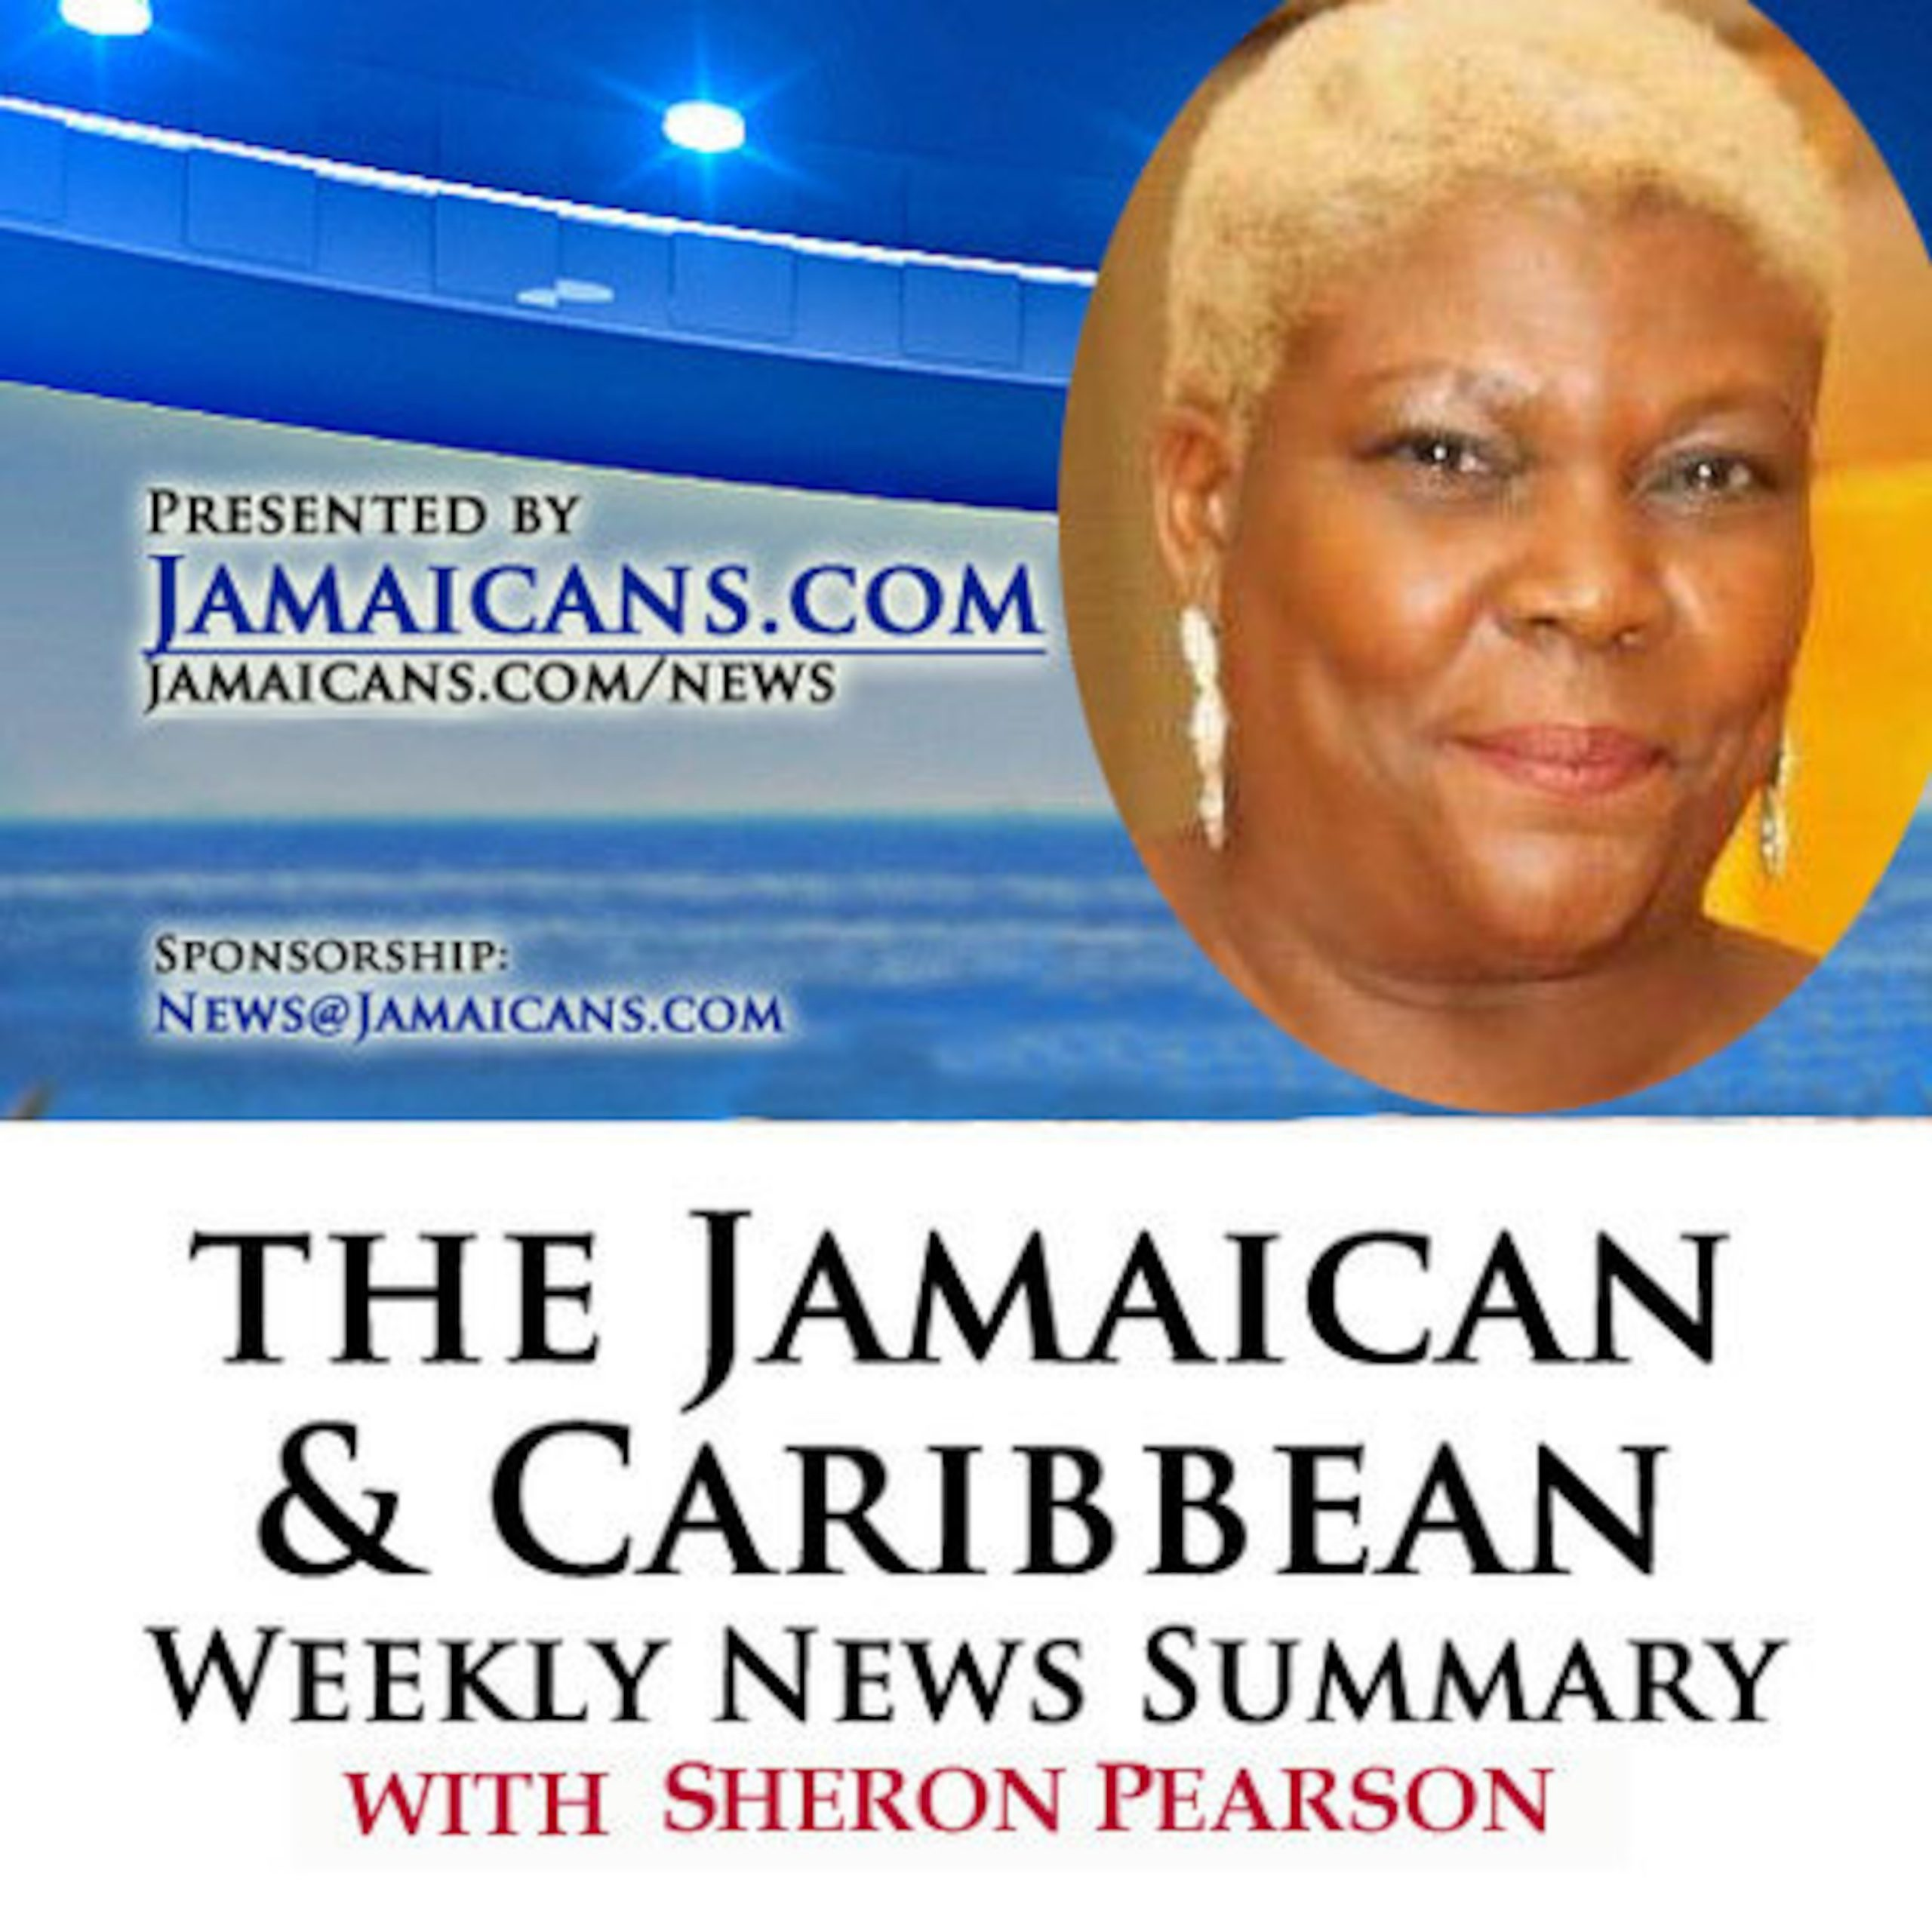 Listen to the Podcast of The Jamaica & Caribbean Weekly News Summary for the week ending May 29, 2020